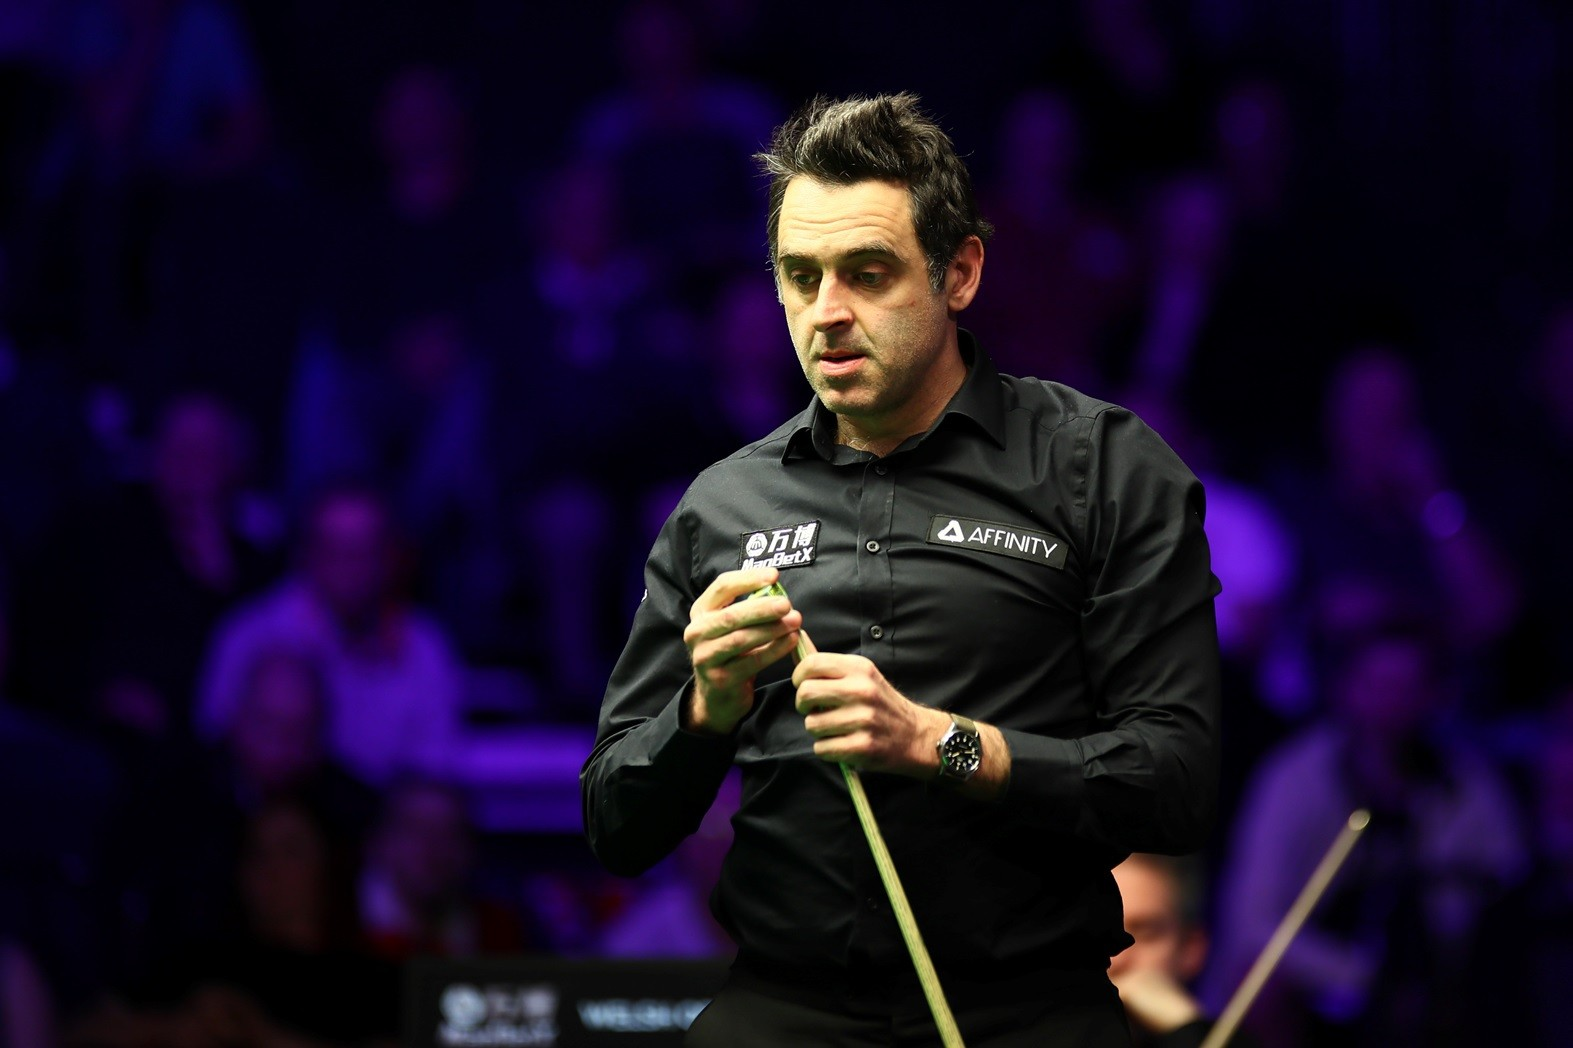 Champion of Champions Snooker 2020 Day Four preview and order of play: Rocket launches title quest